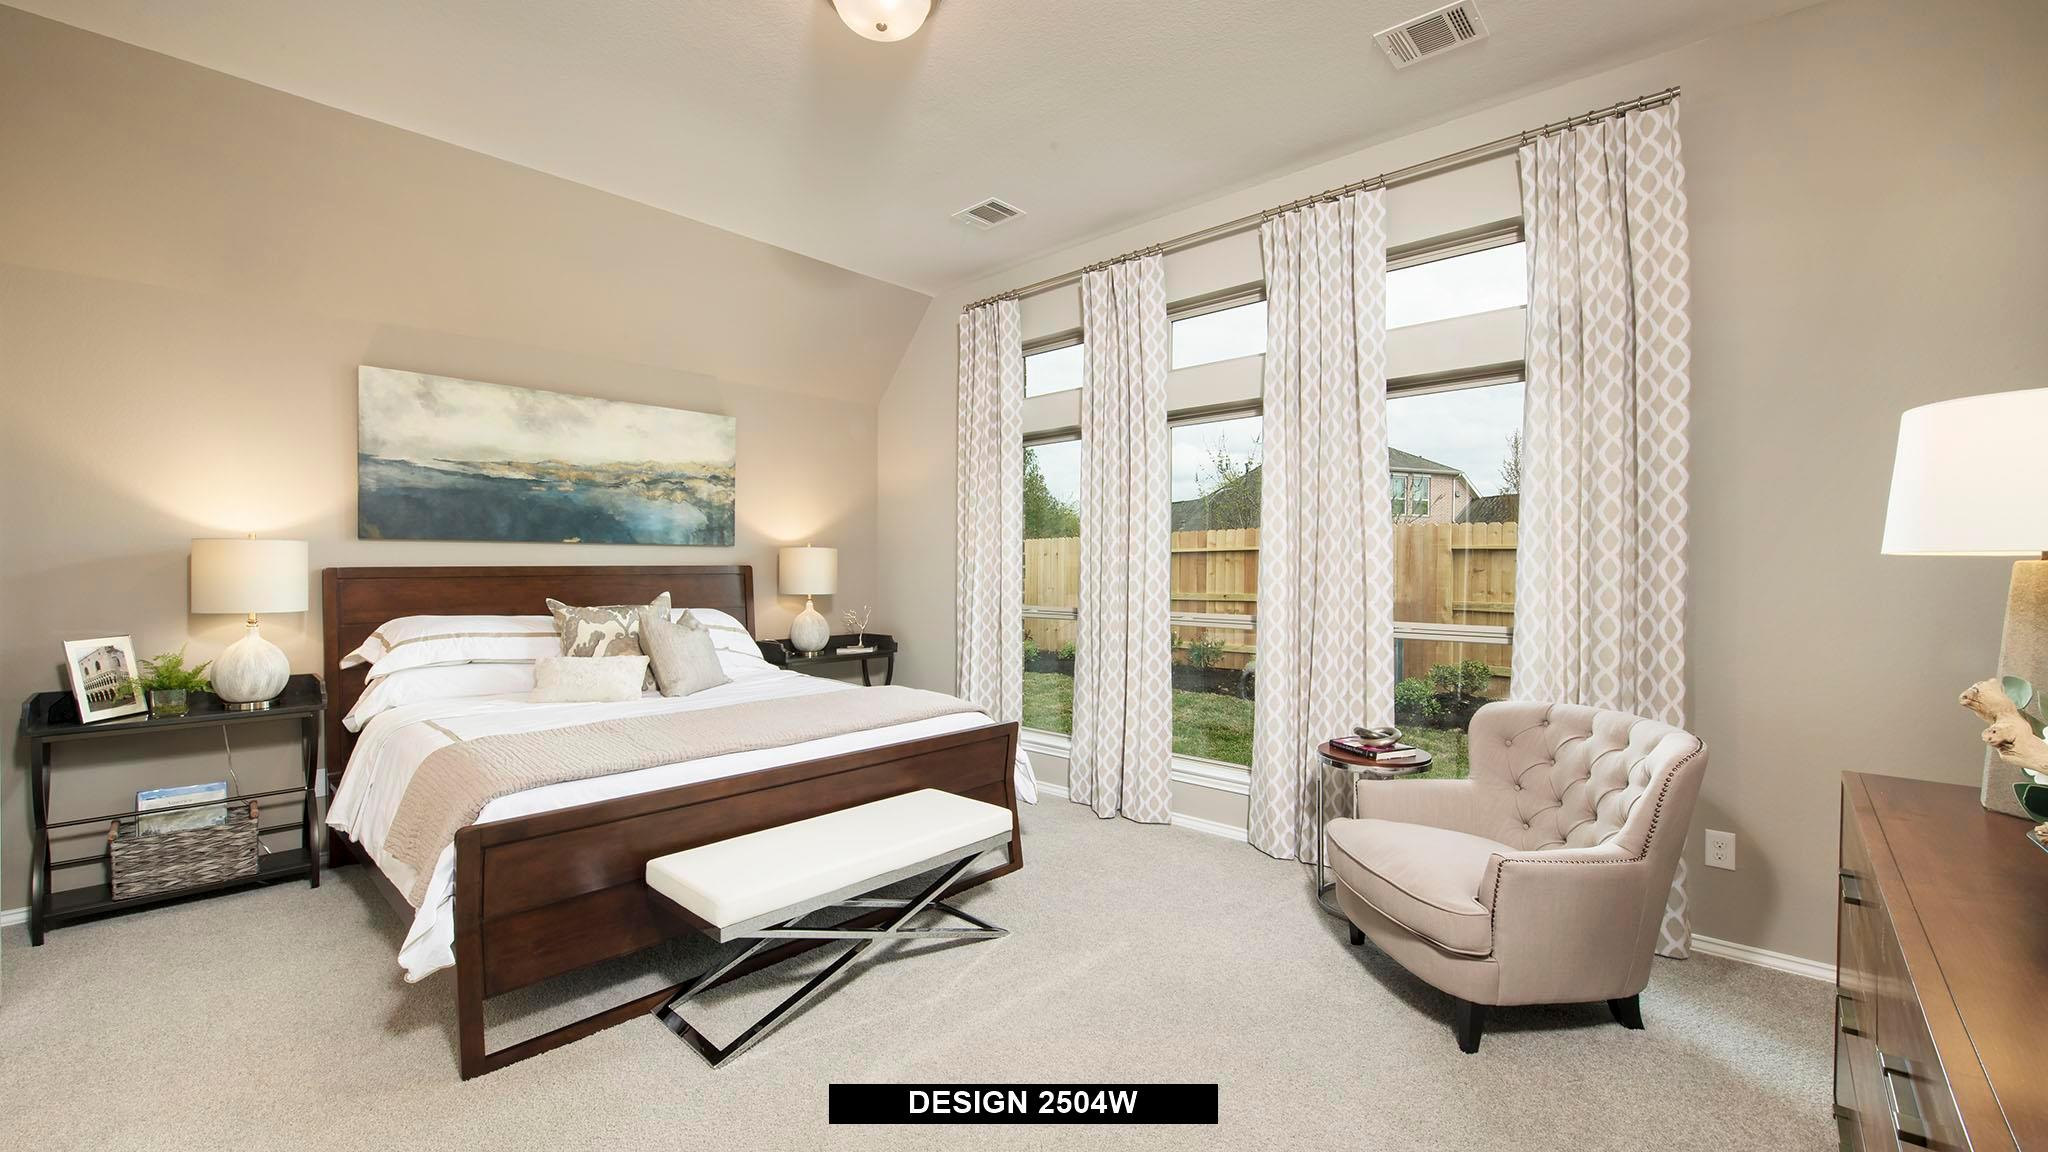 Bedroom featured in the 2504W By Perry Homes in Dallas, TX